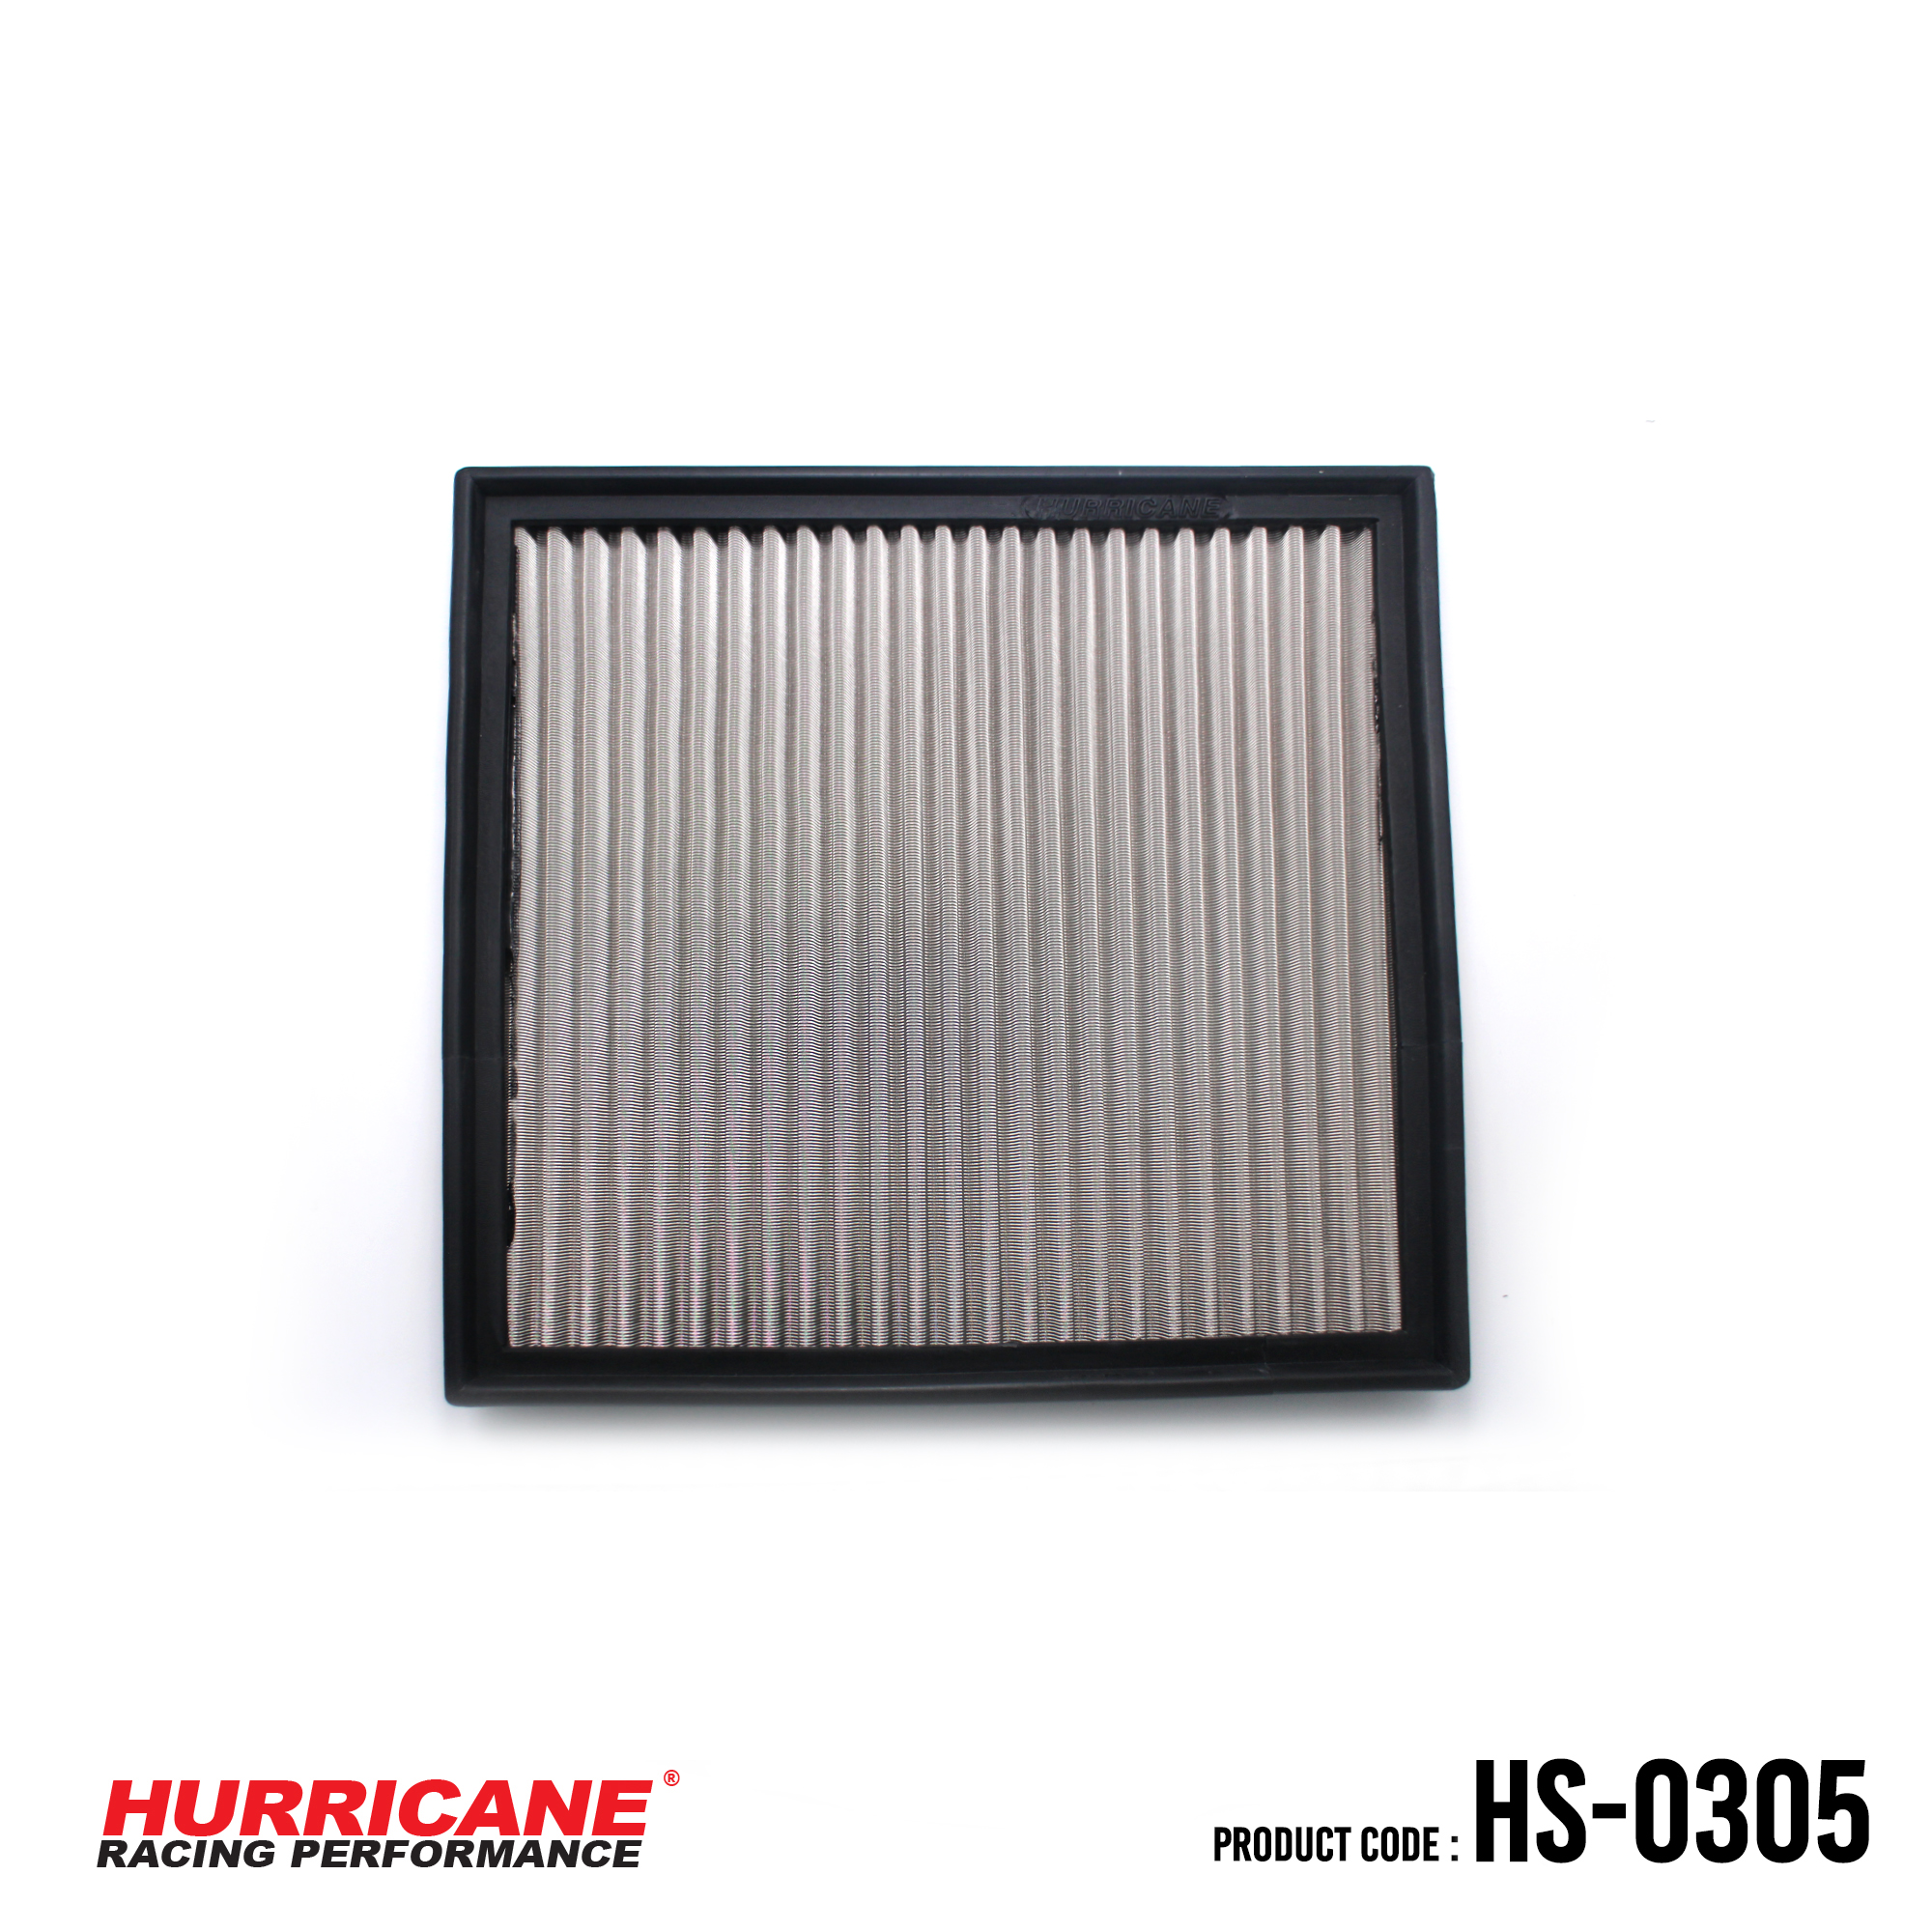 HURRICANE STAINLESS STEEL AIR FILTER FOR HS-0305 BuickChevroletOpelVauxhall